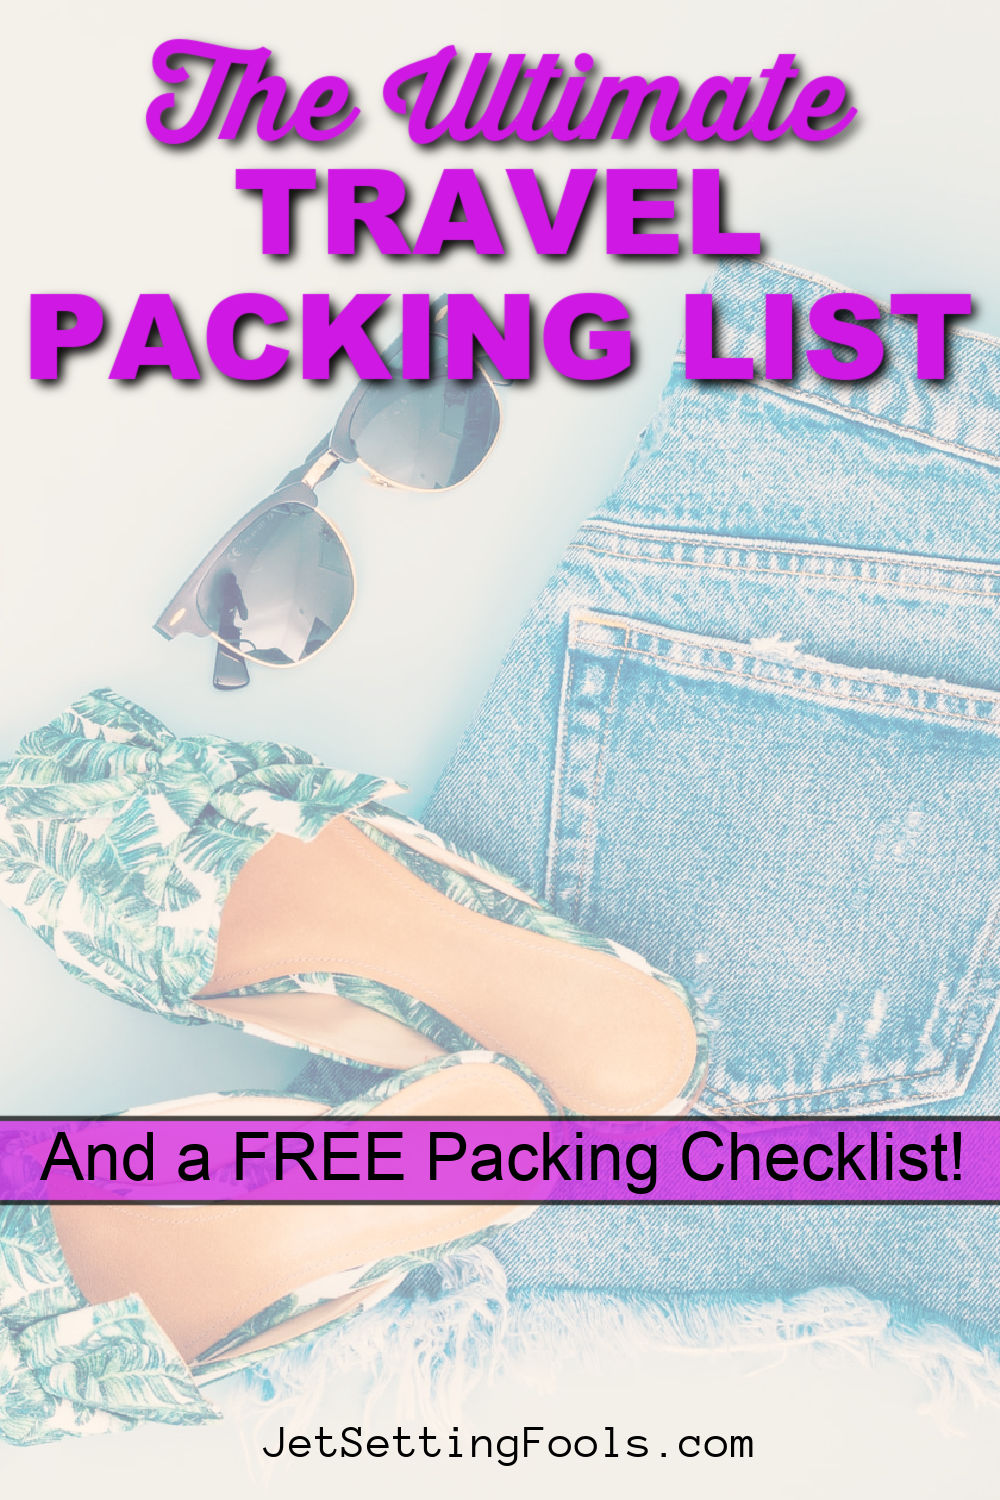 Travel Packing List and Free Packing Checklist by JetSettingFools.com